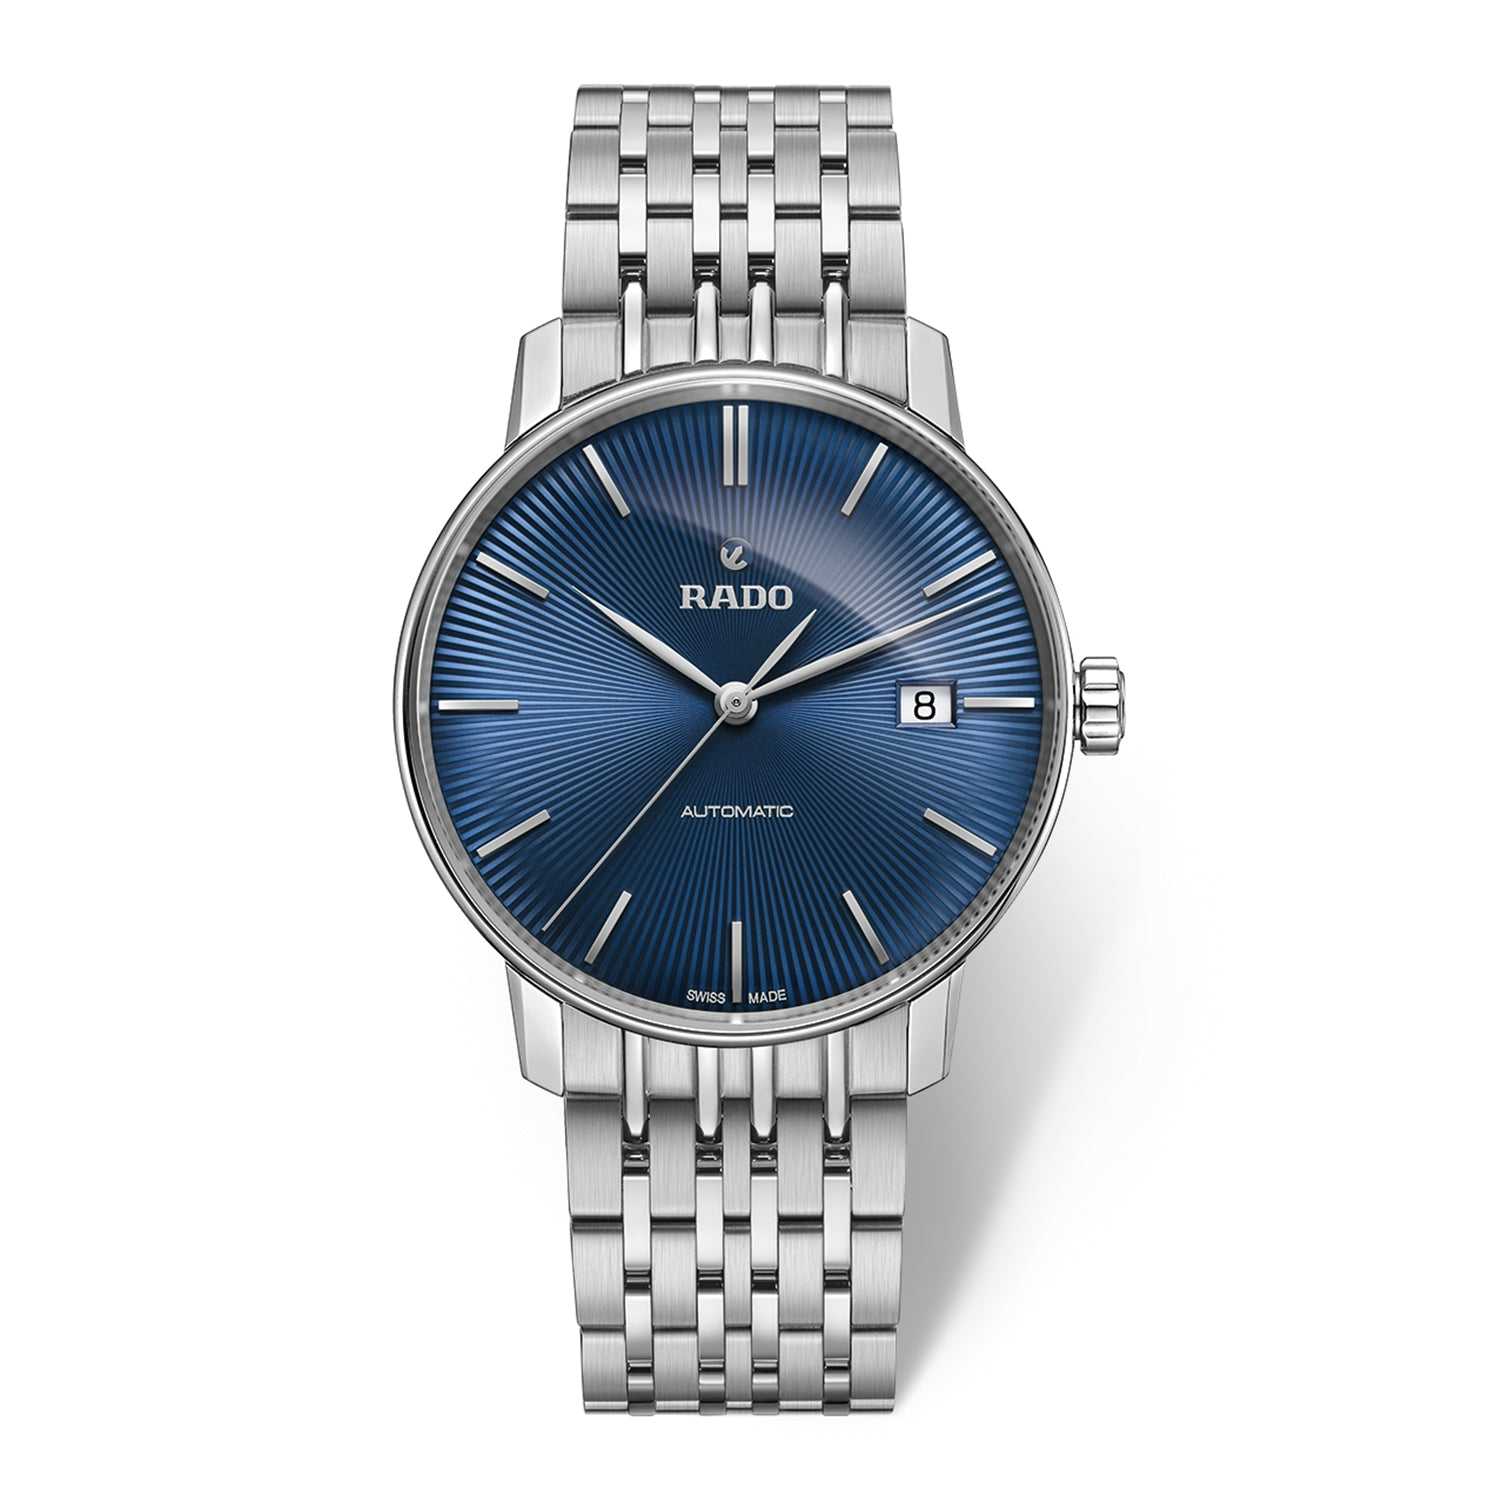 Rado Coupole Classic L watch with 9-Link Stainless steel bracelet, blue dial